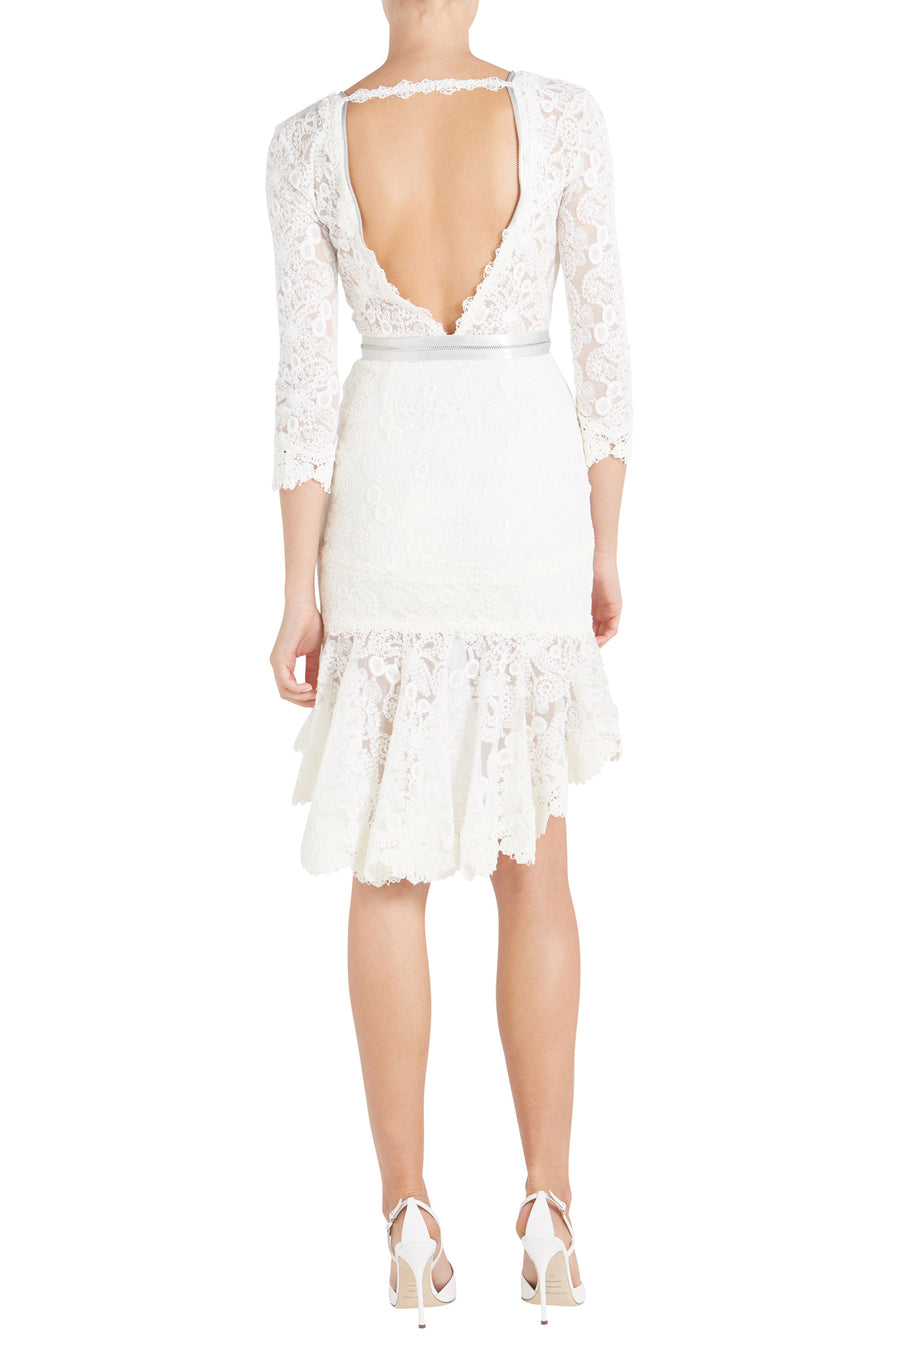 PARISA LACE DRESS W/ ZIPPER DETAIL